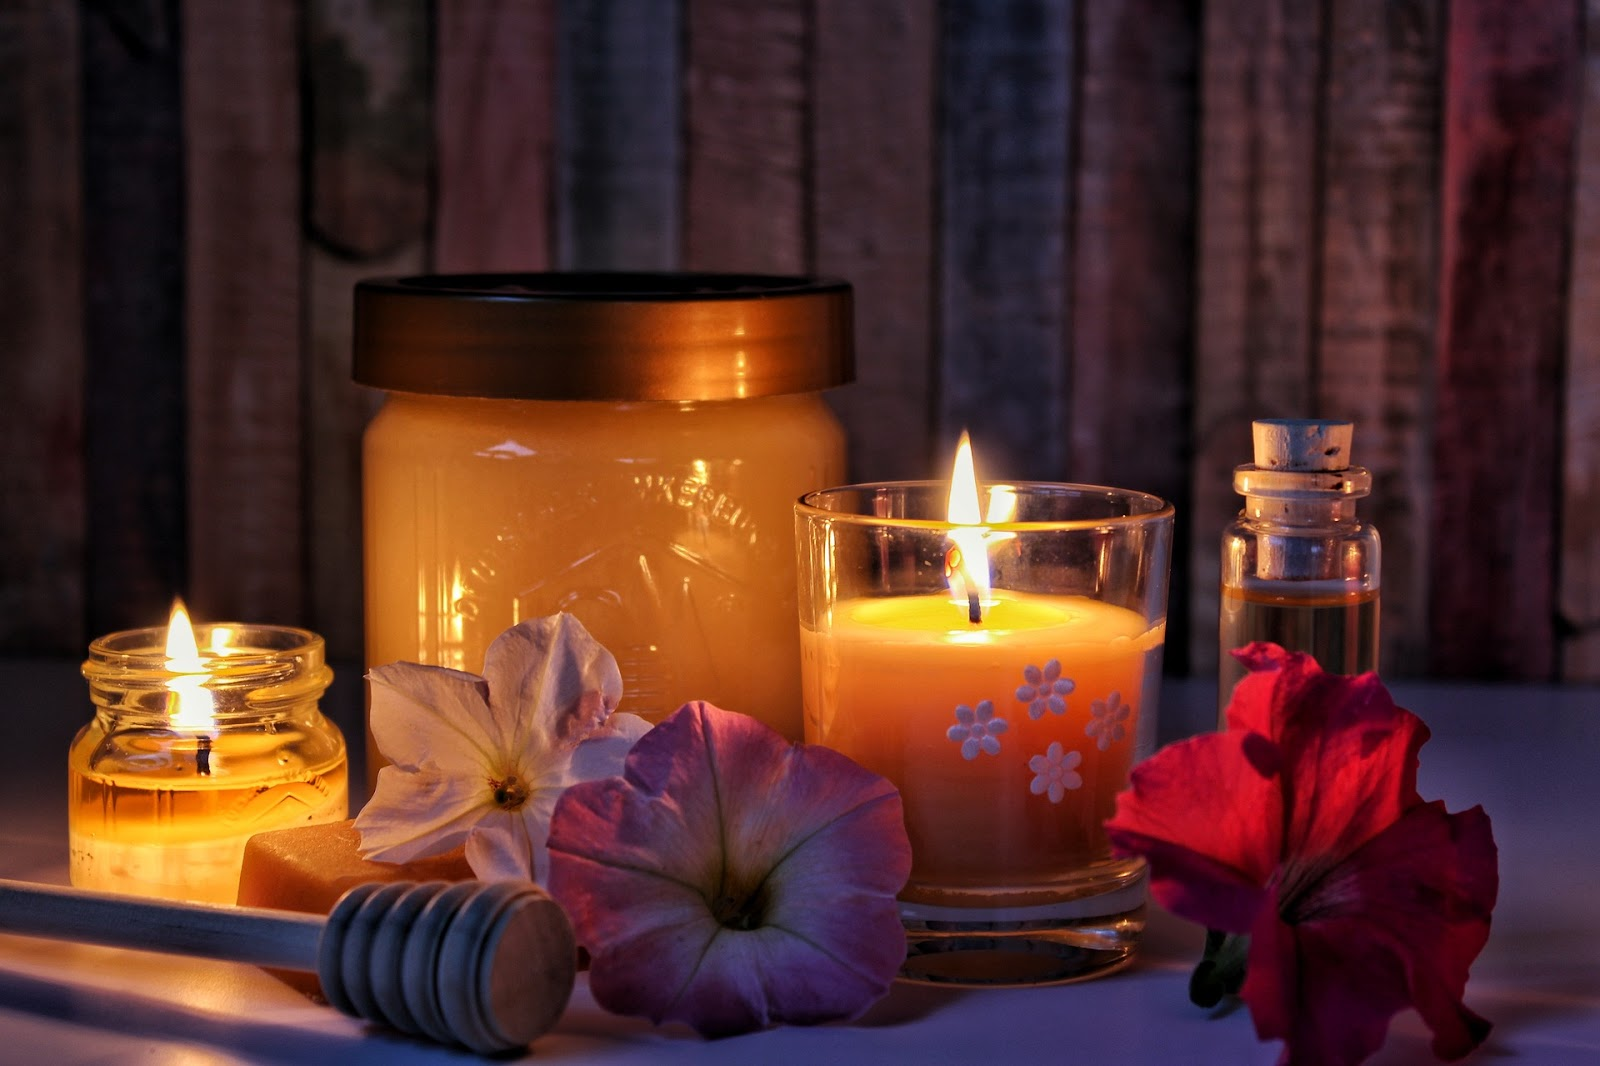 honey flowers and candles